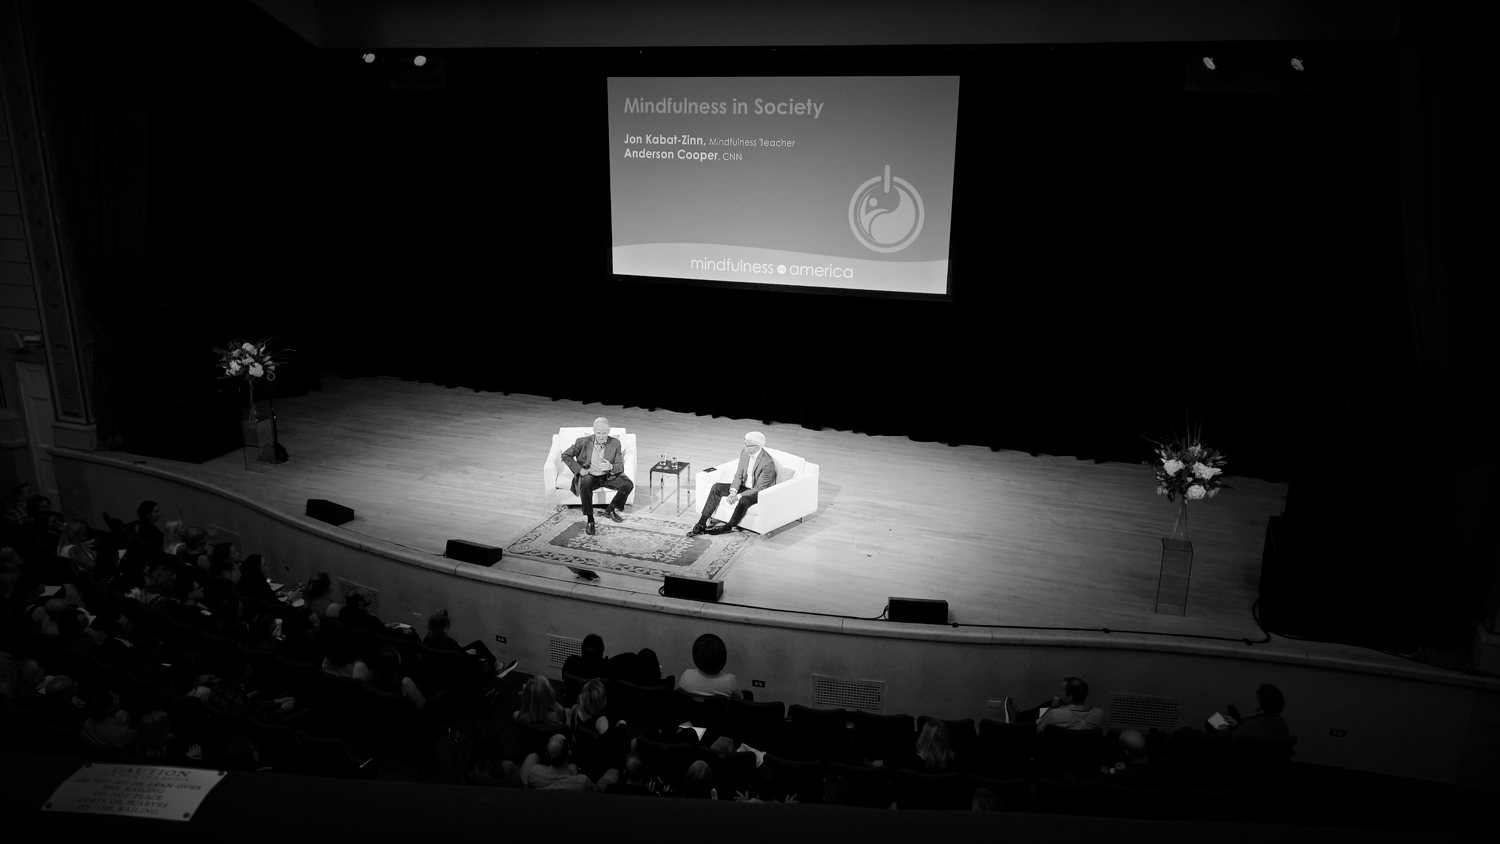 Jon Kabat-Zinn and Anderson Cooper at the Mindfulness in America Summit, NYC | OMventure.com